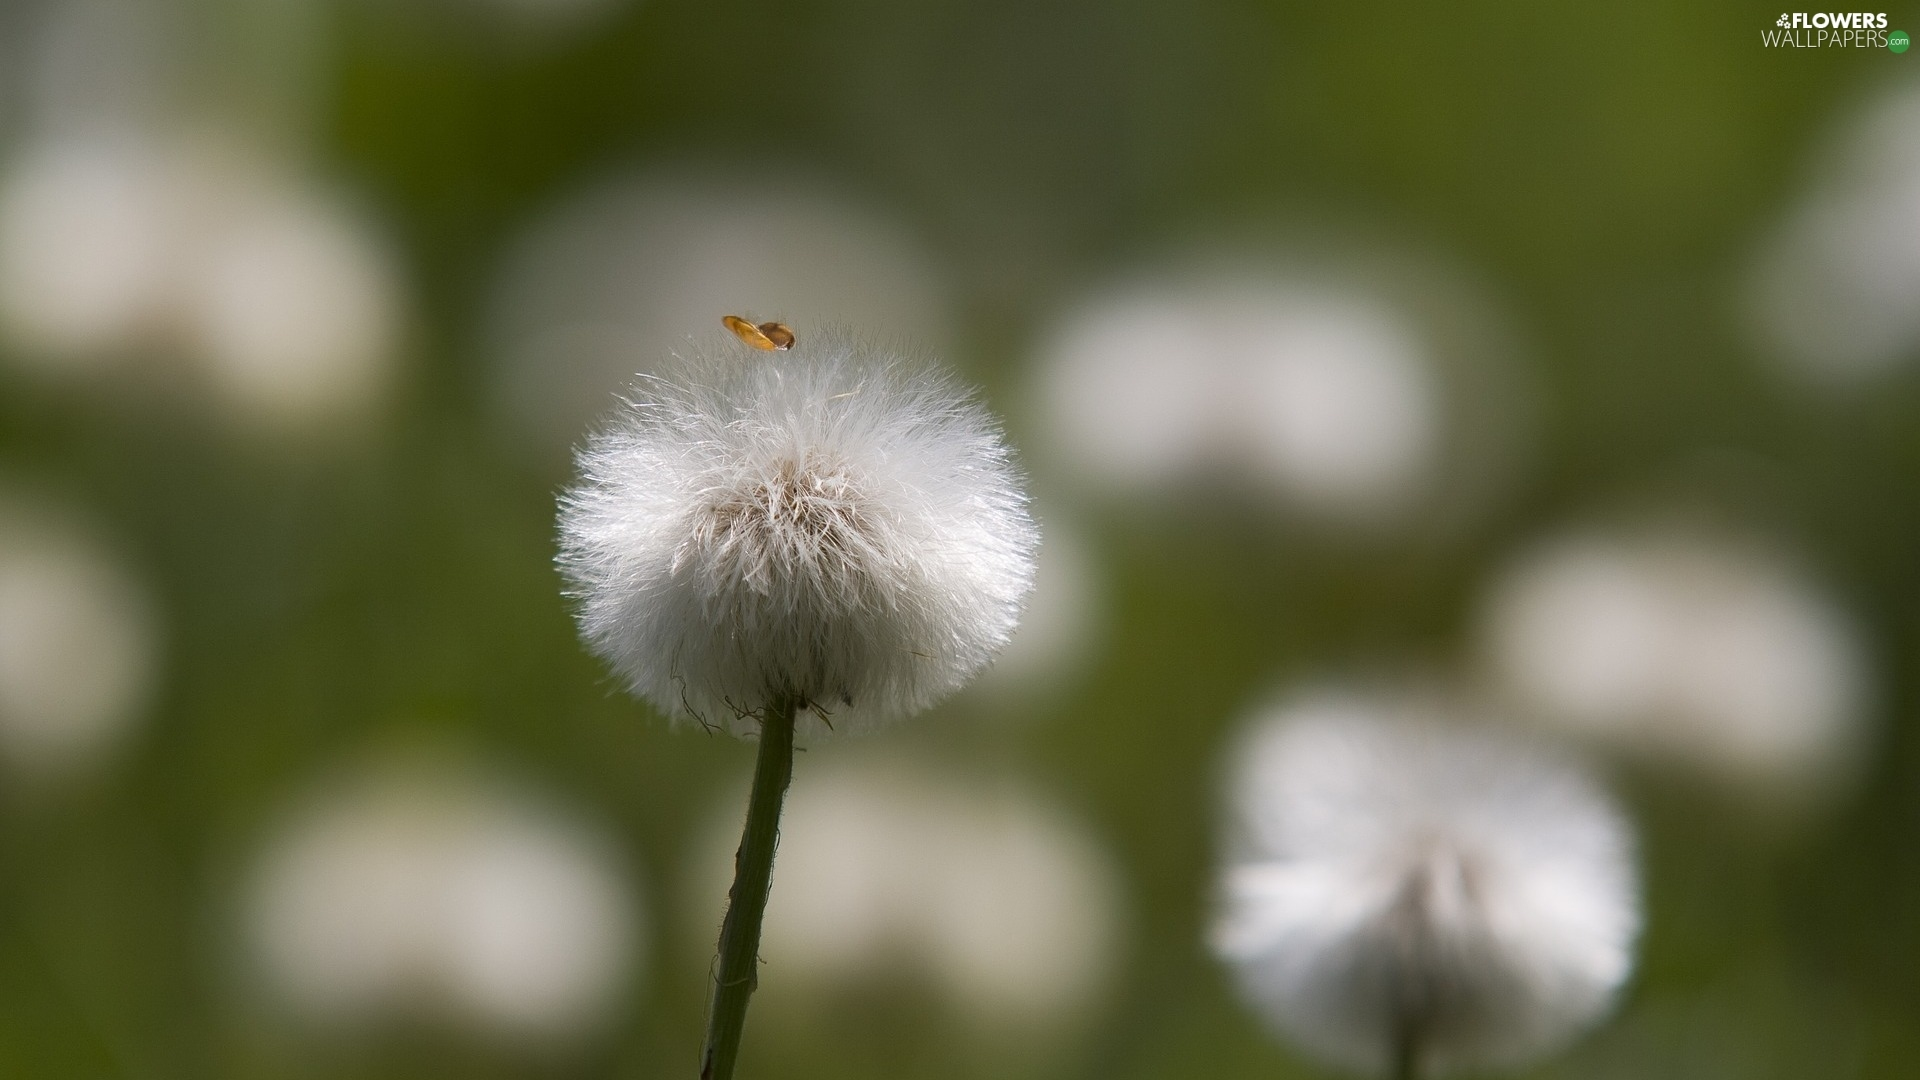 dandelion, blurry background, Common Coltsfoot